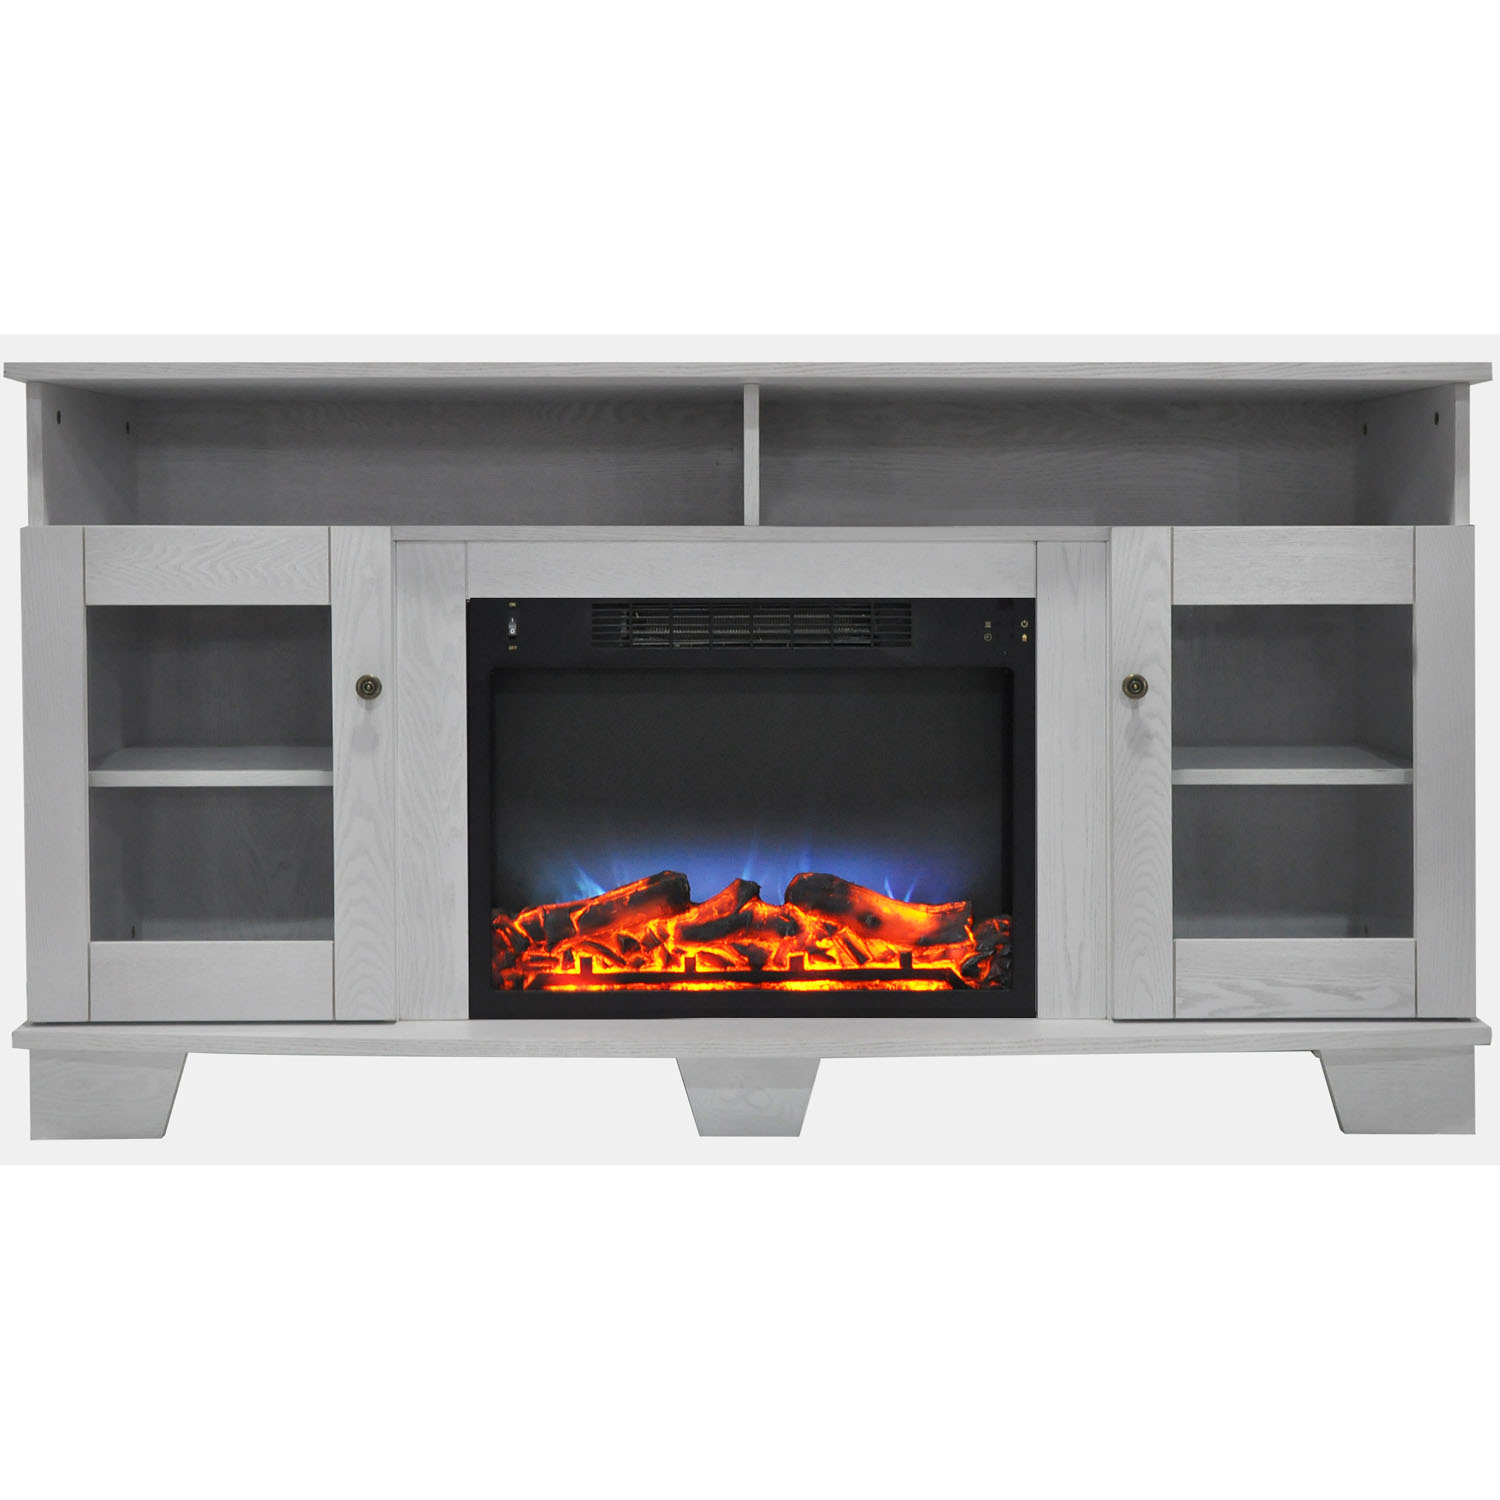 "Cambridge Savona Electric Fireplace Heater with 59"" Entertainment Stand and Multi-Color LED Flame Display"